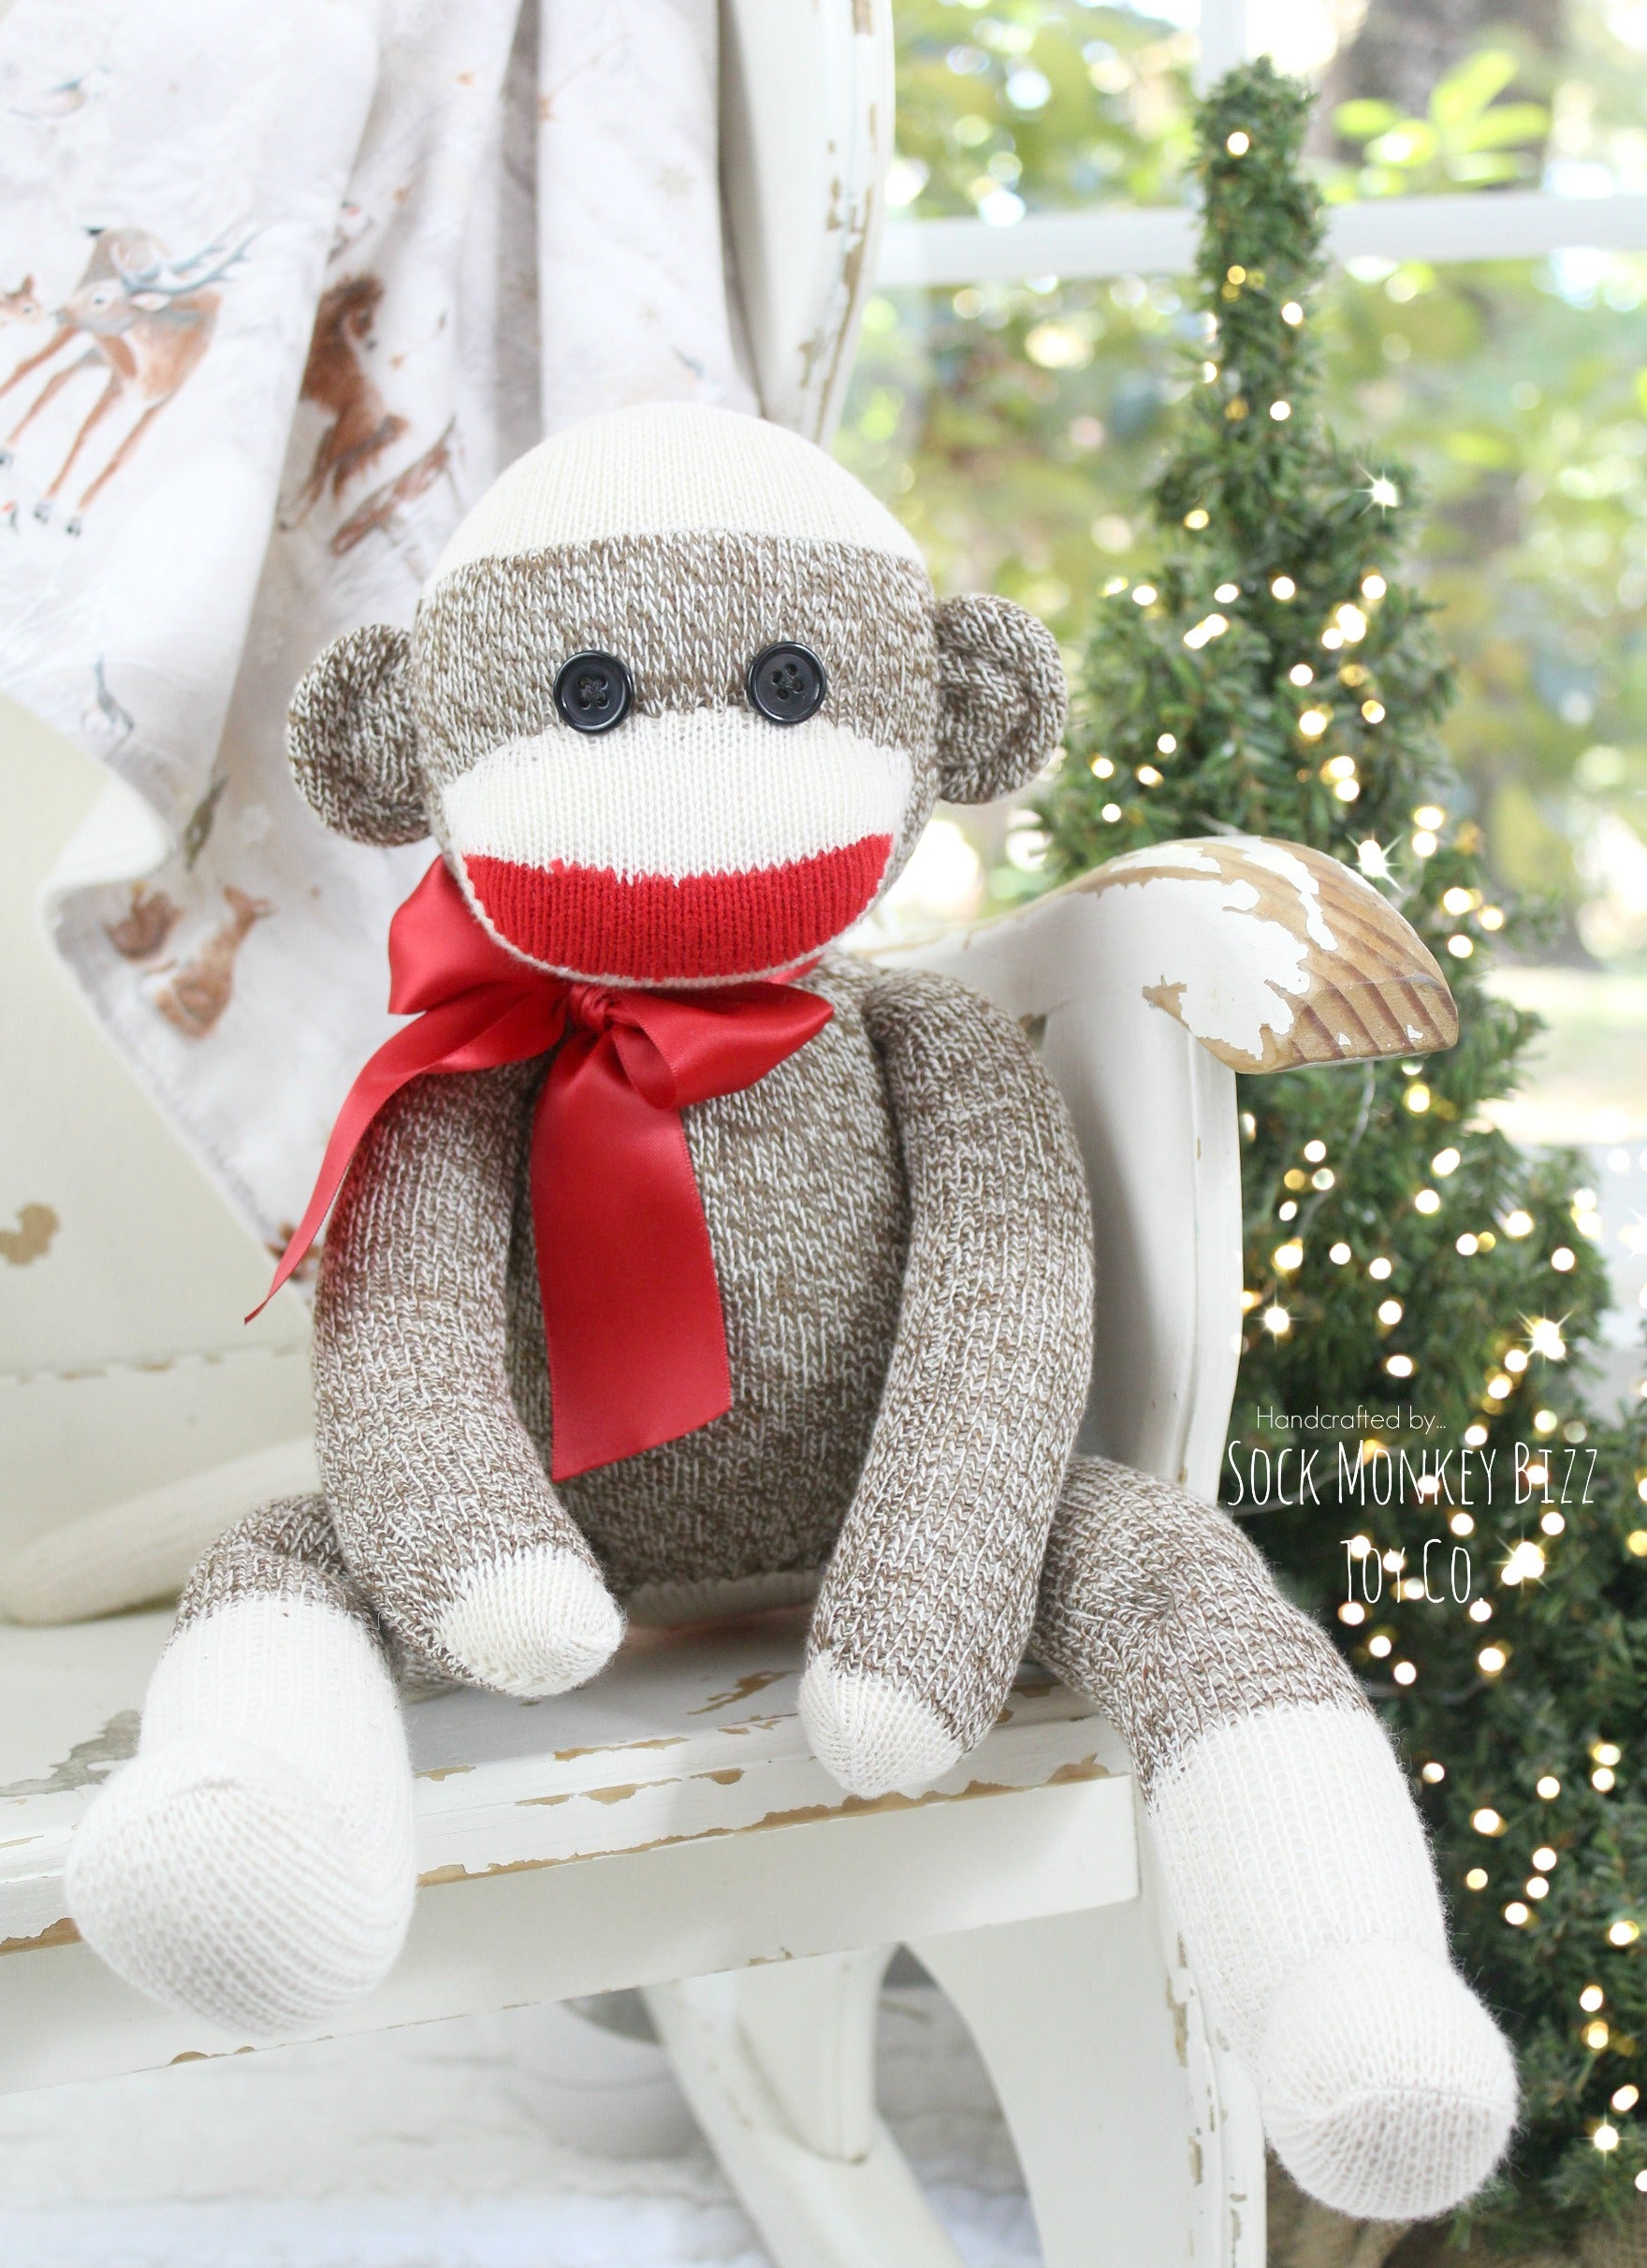 Handmade Sock Monkey Doll